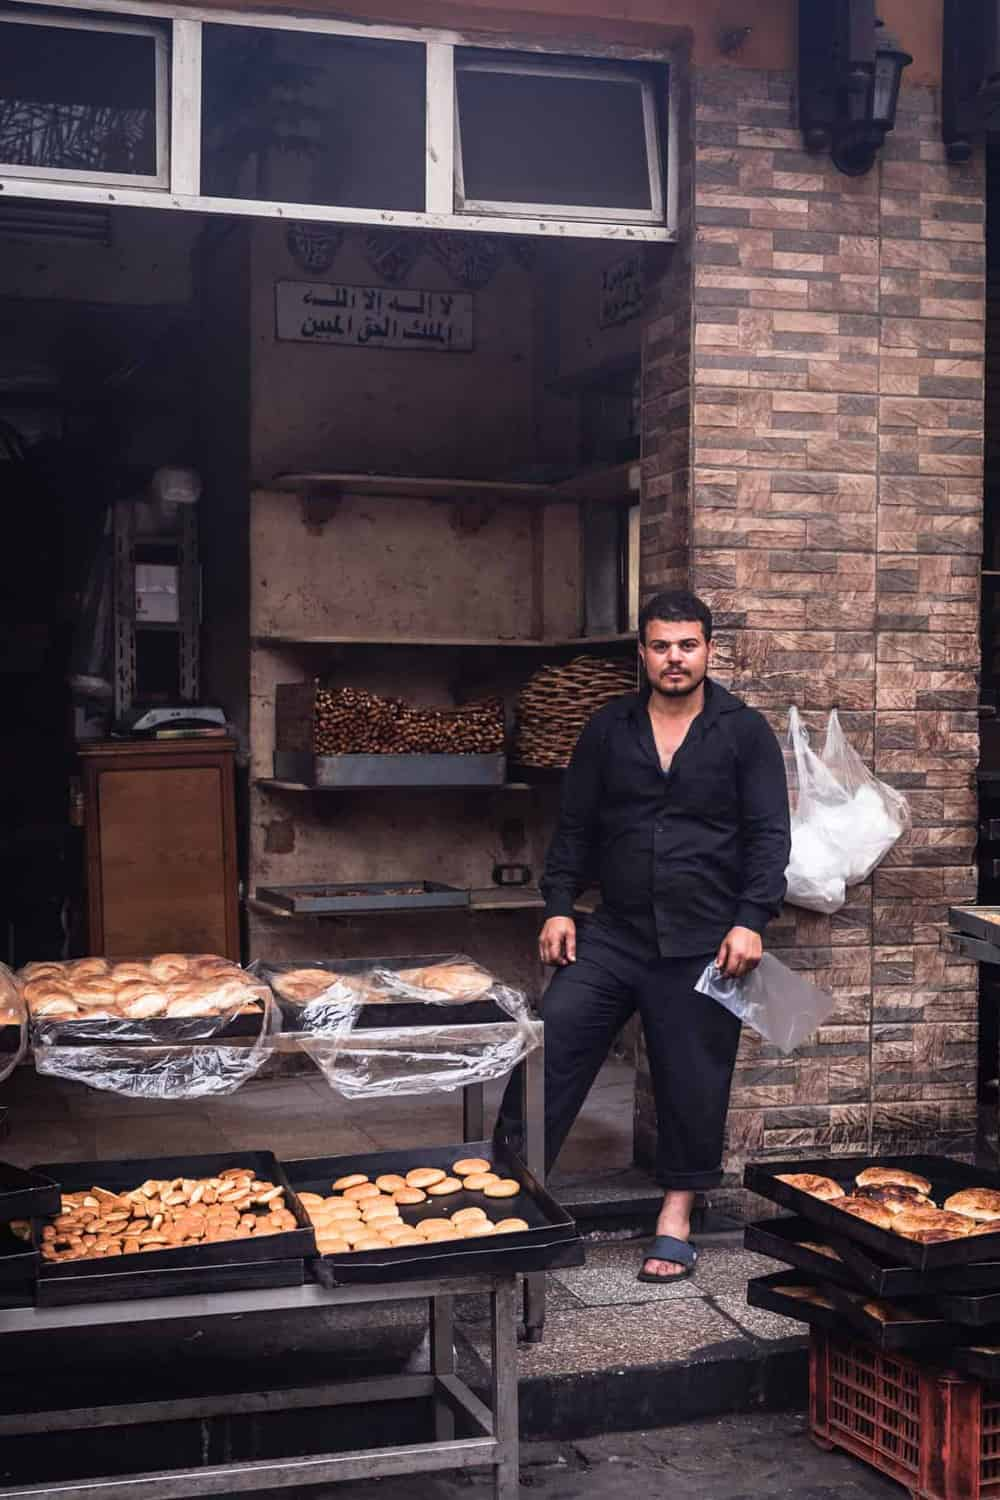 Bakery in Old Cairo, portrait shot of store owner posing with a serious face in front if his baked goods.